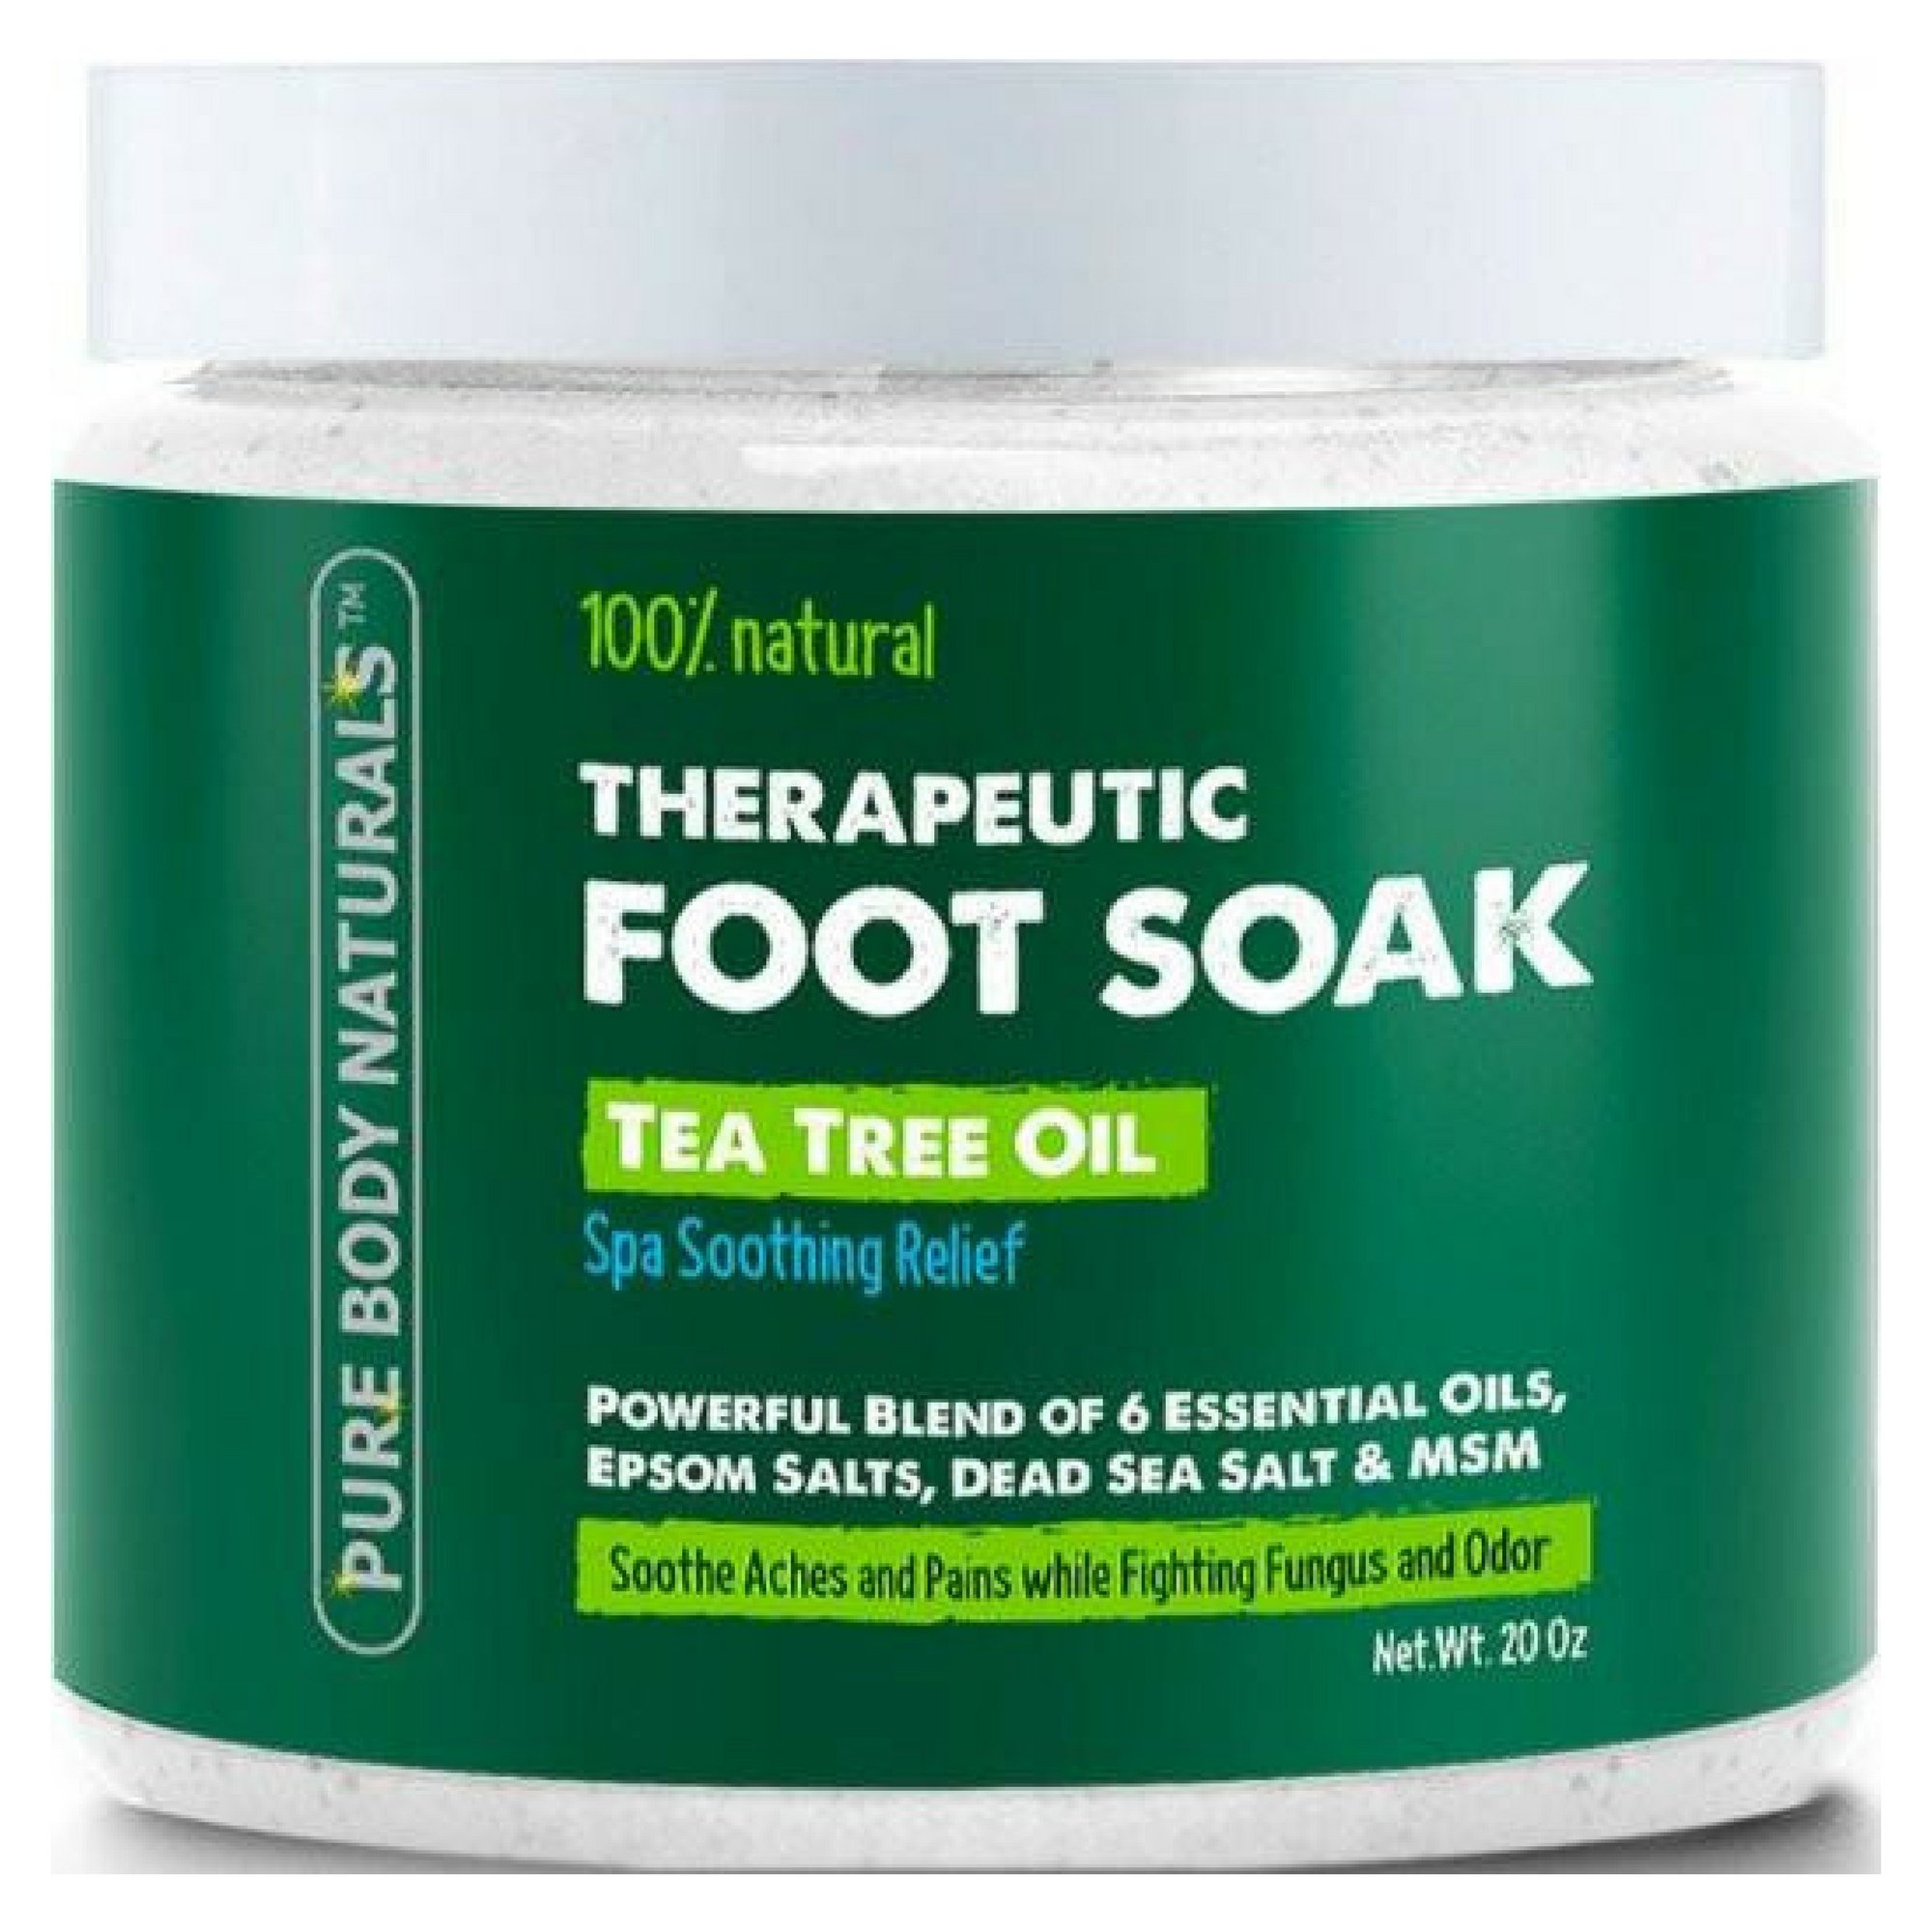 Tea Tree Oil Foot Soak by Pure Body Naturals, 100% Natural and Soothing with Epsom and Dead Sea Salts, Foot Fungus Treatment and Anti-Fungal Wash - 20 Ounce (Large)